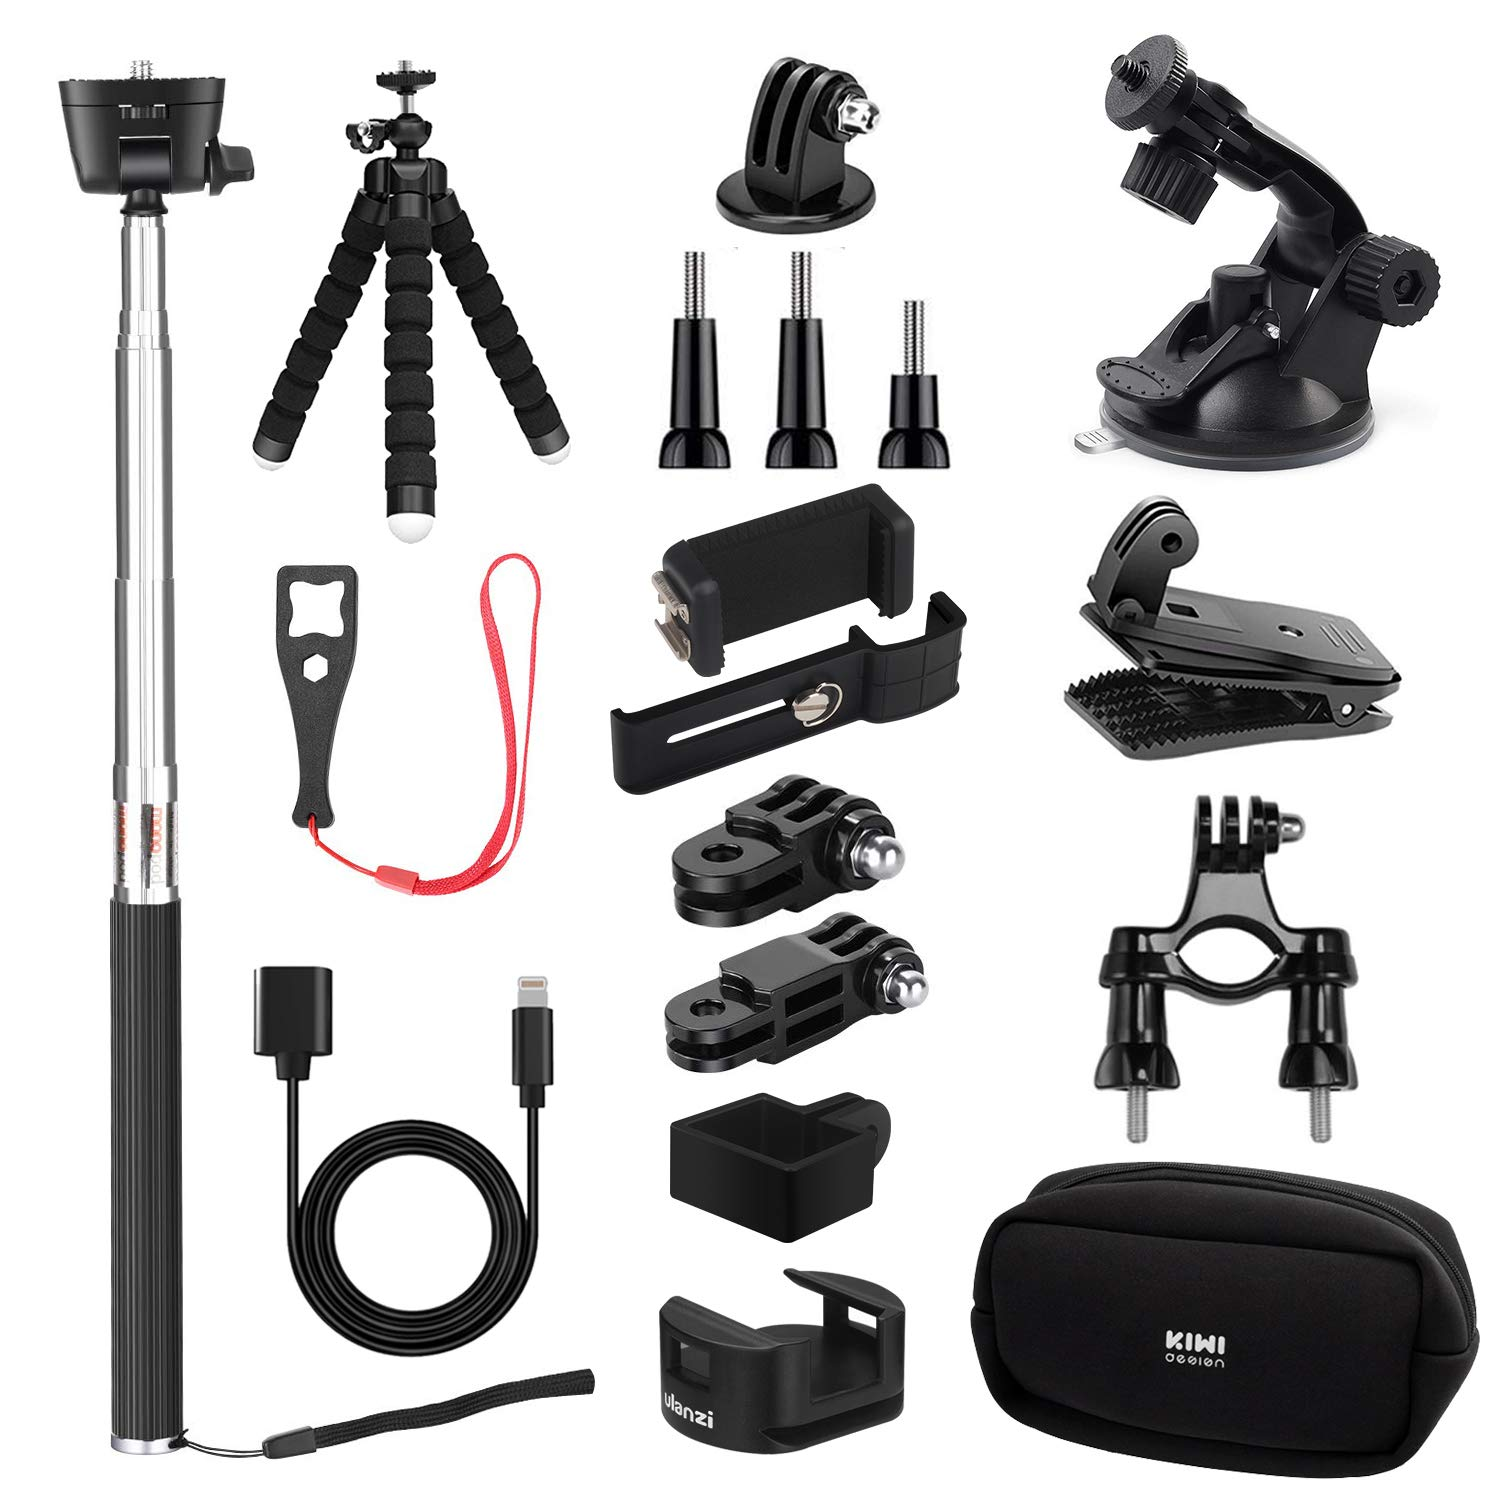 KIWI design Accessories for DJI Osmo Pocket | Expansion Kit Accessory Bundle with Mounts Strap Clip Phone Bracket Holder WiFi Tripod Adapter Selfie Stick Tripod for DJI Osmo Pocket